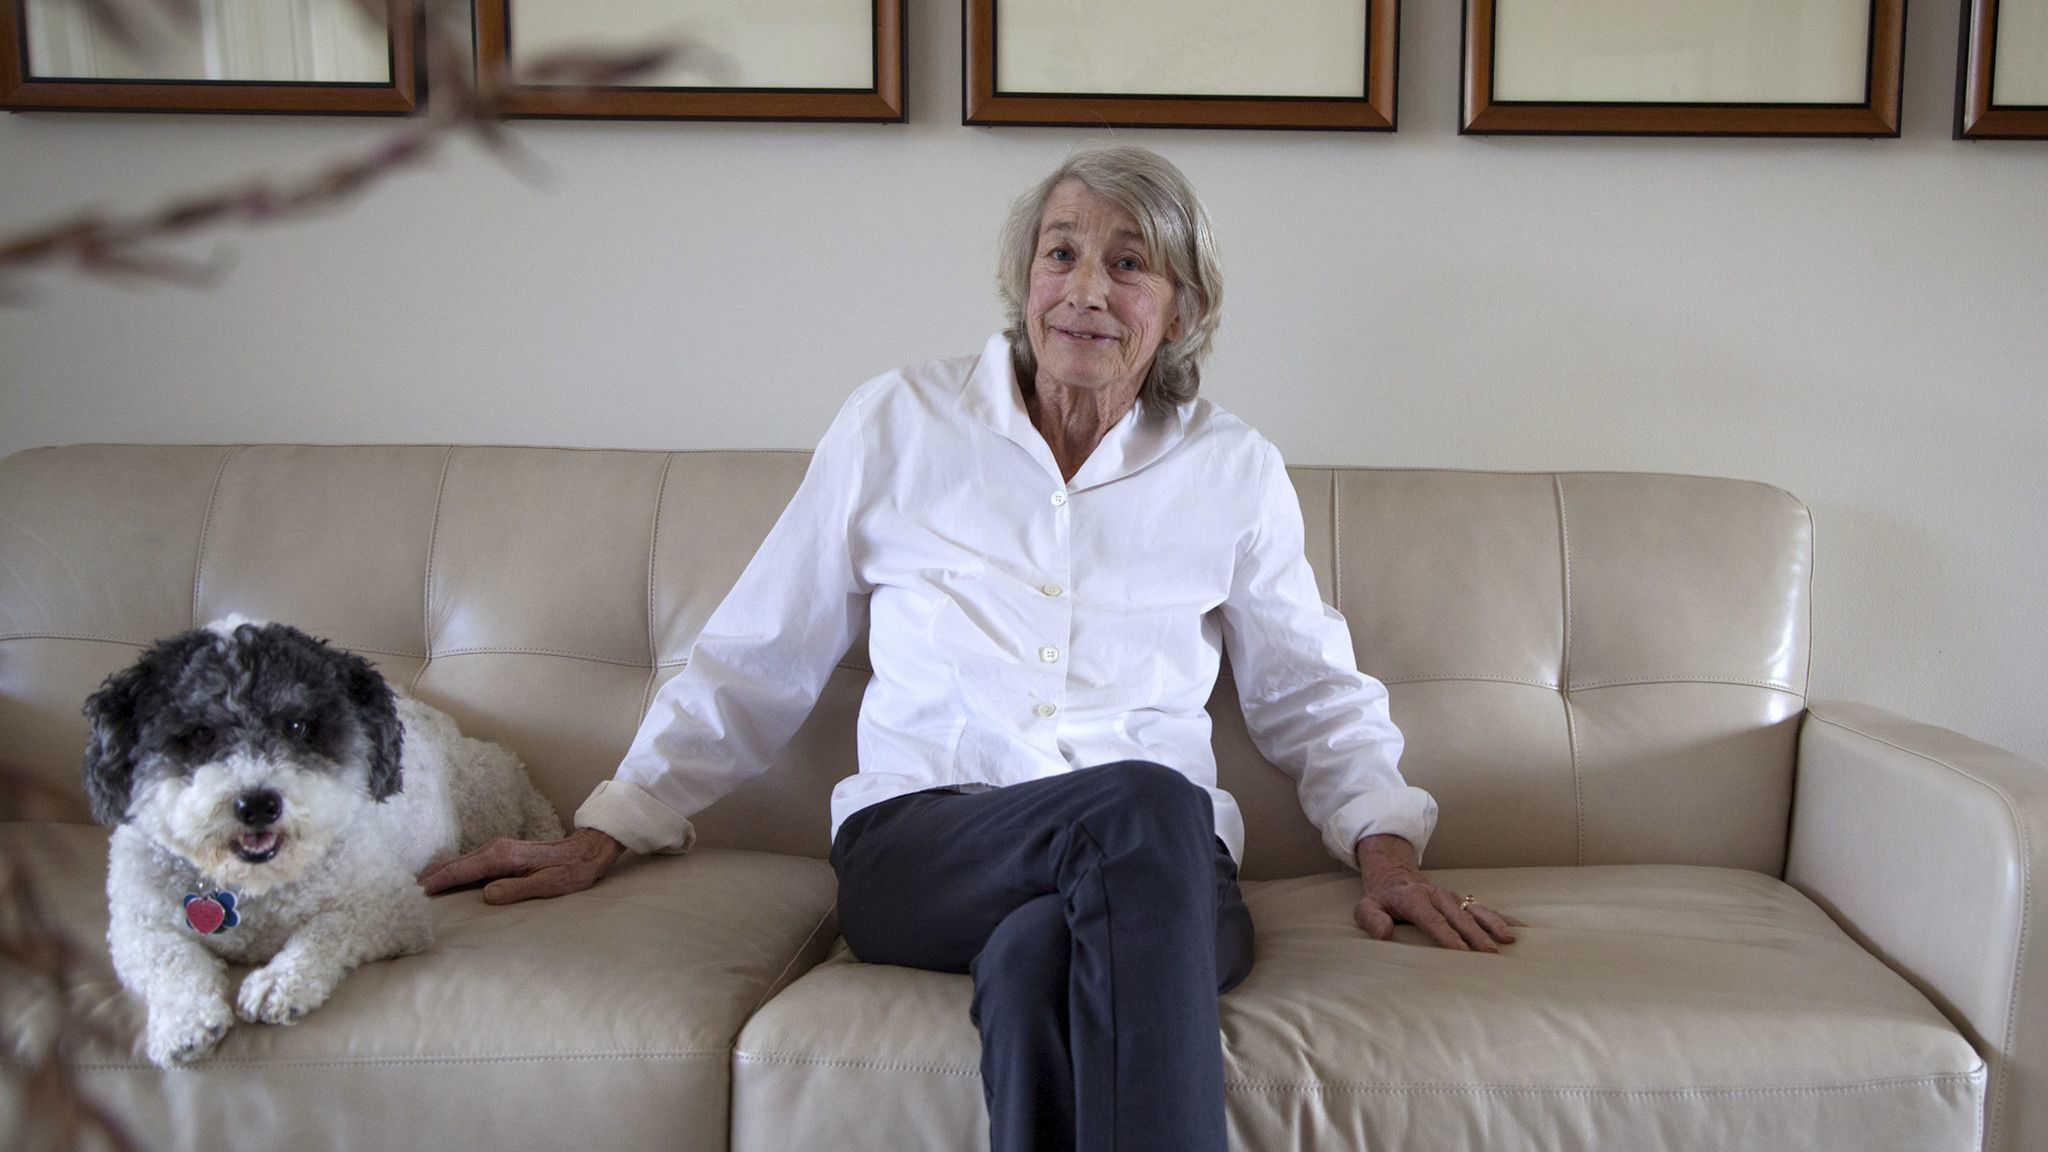 Poet Mary Oliver is dead. Here is what her poems tell us about life.